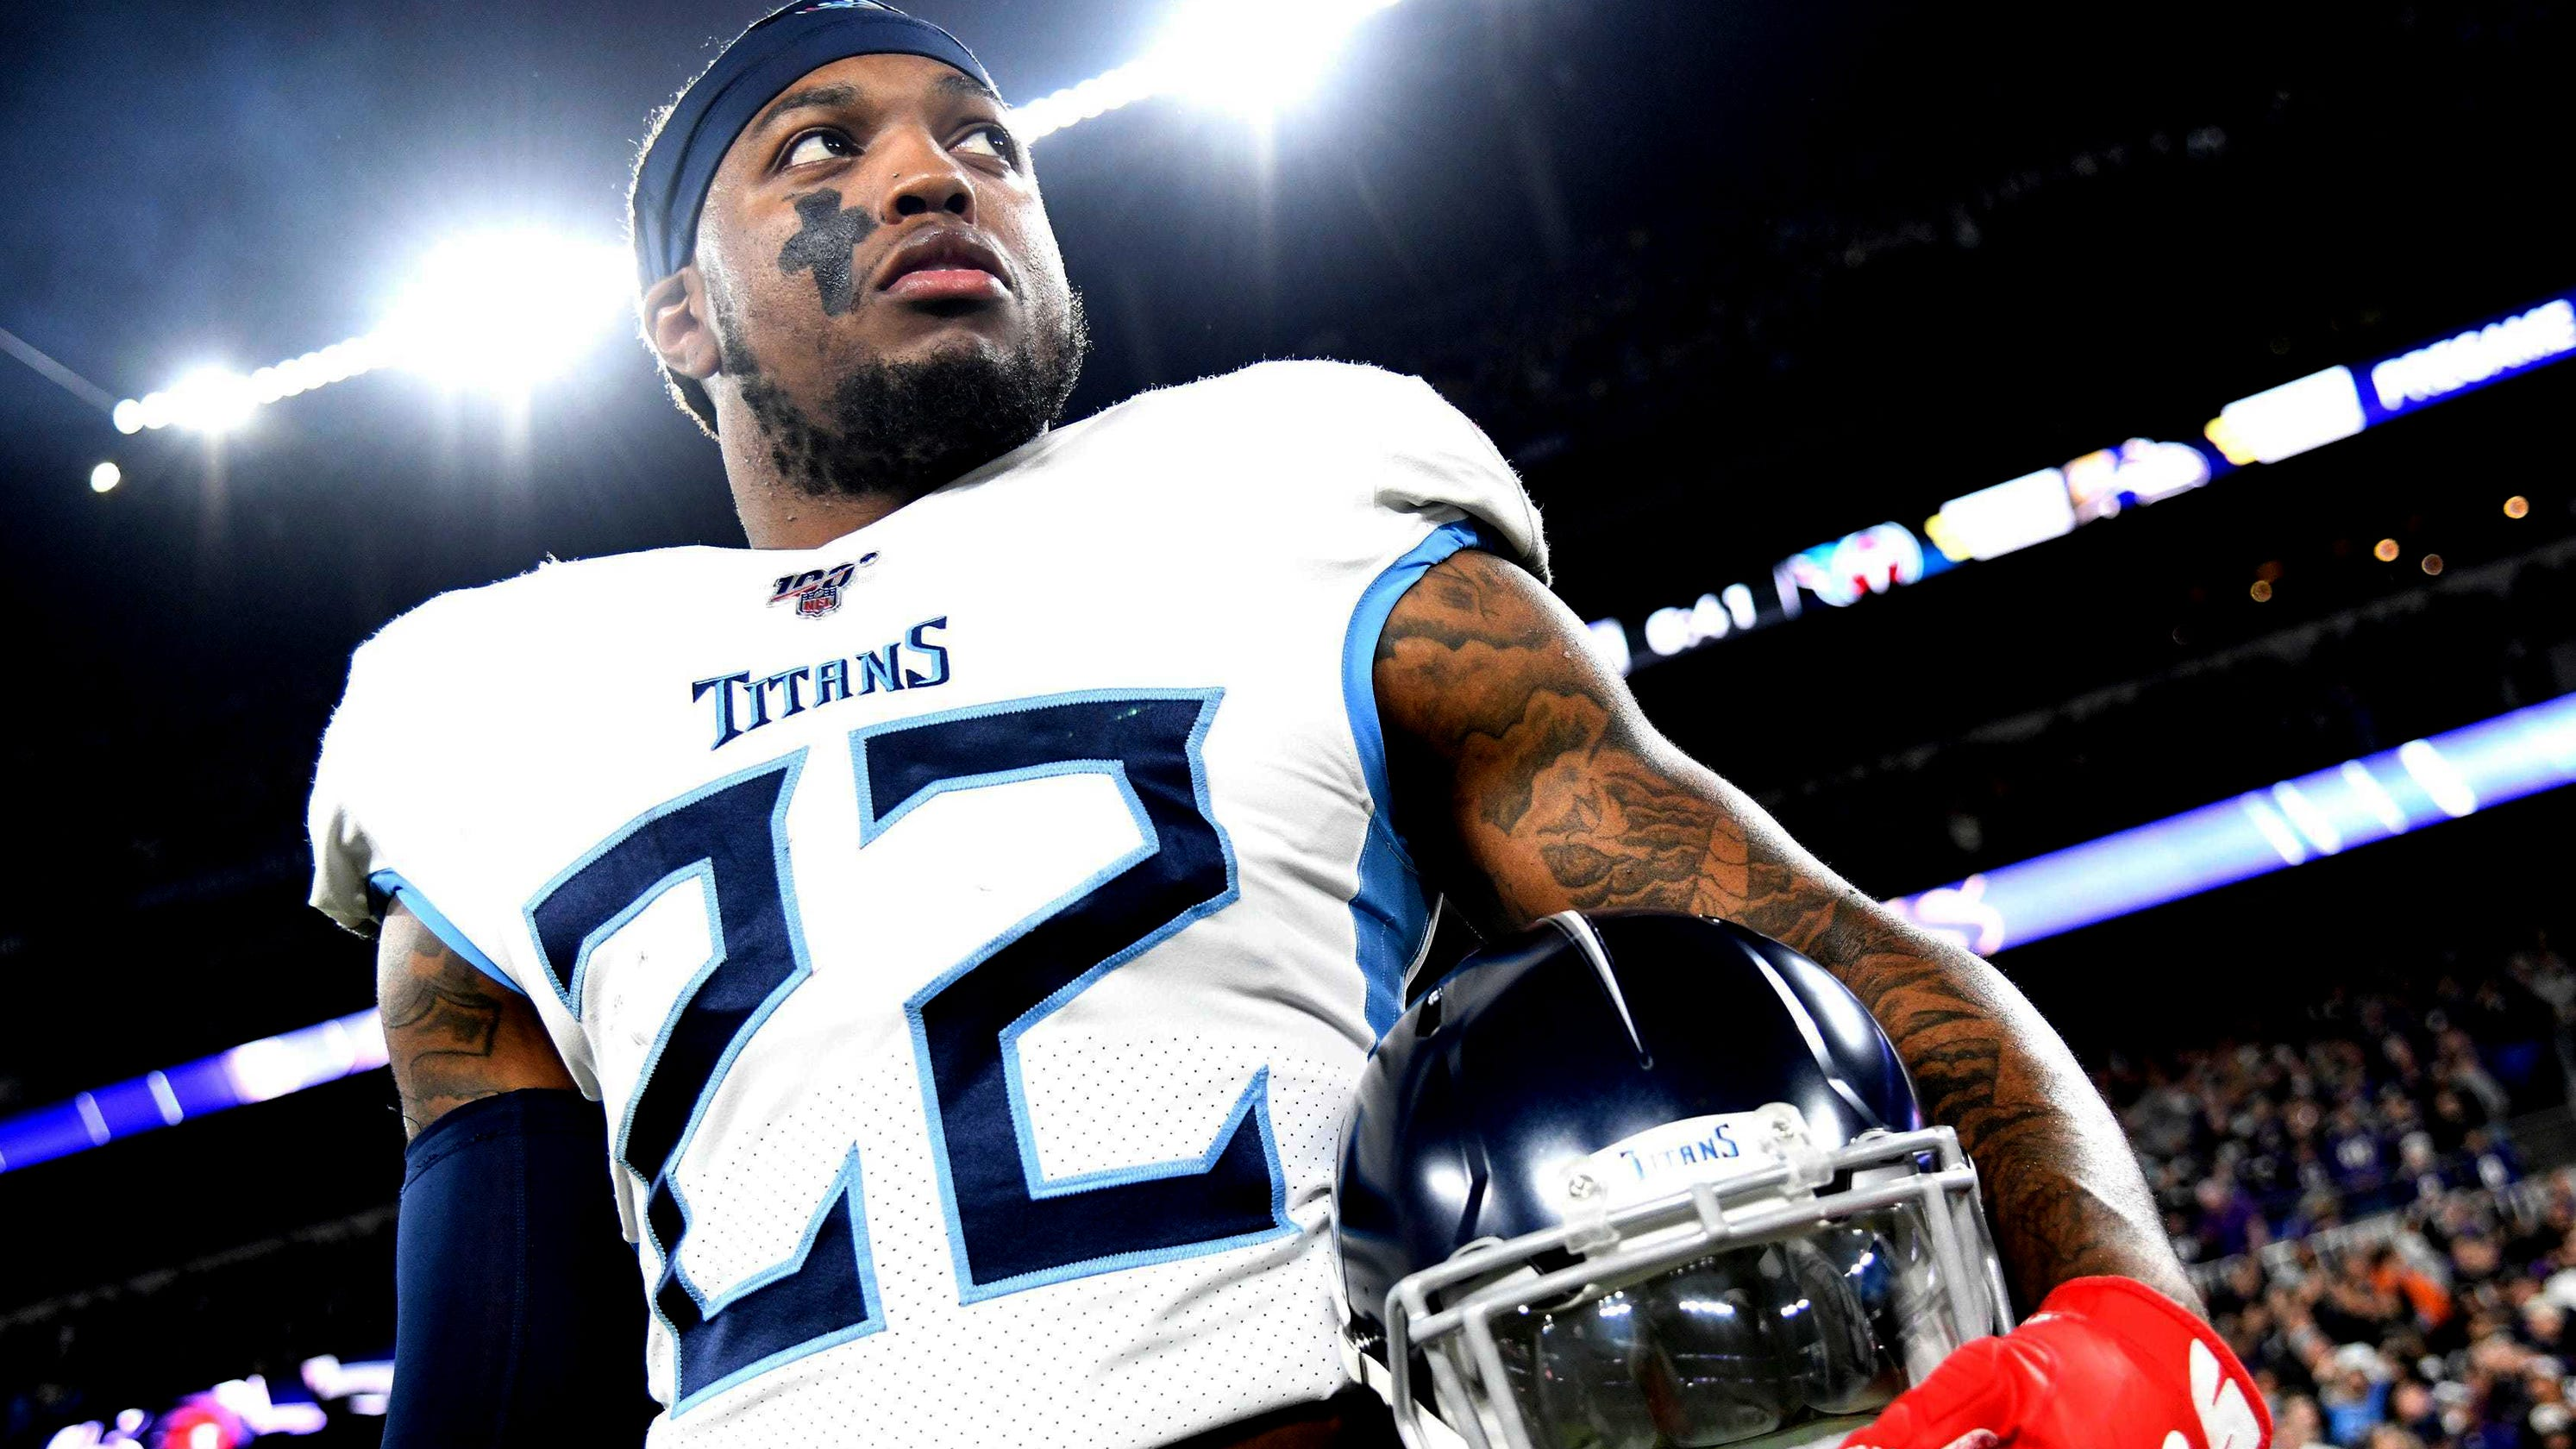 Titans, Derrick Henry not expected to reach long-term deal, per report